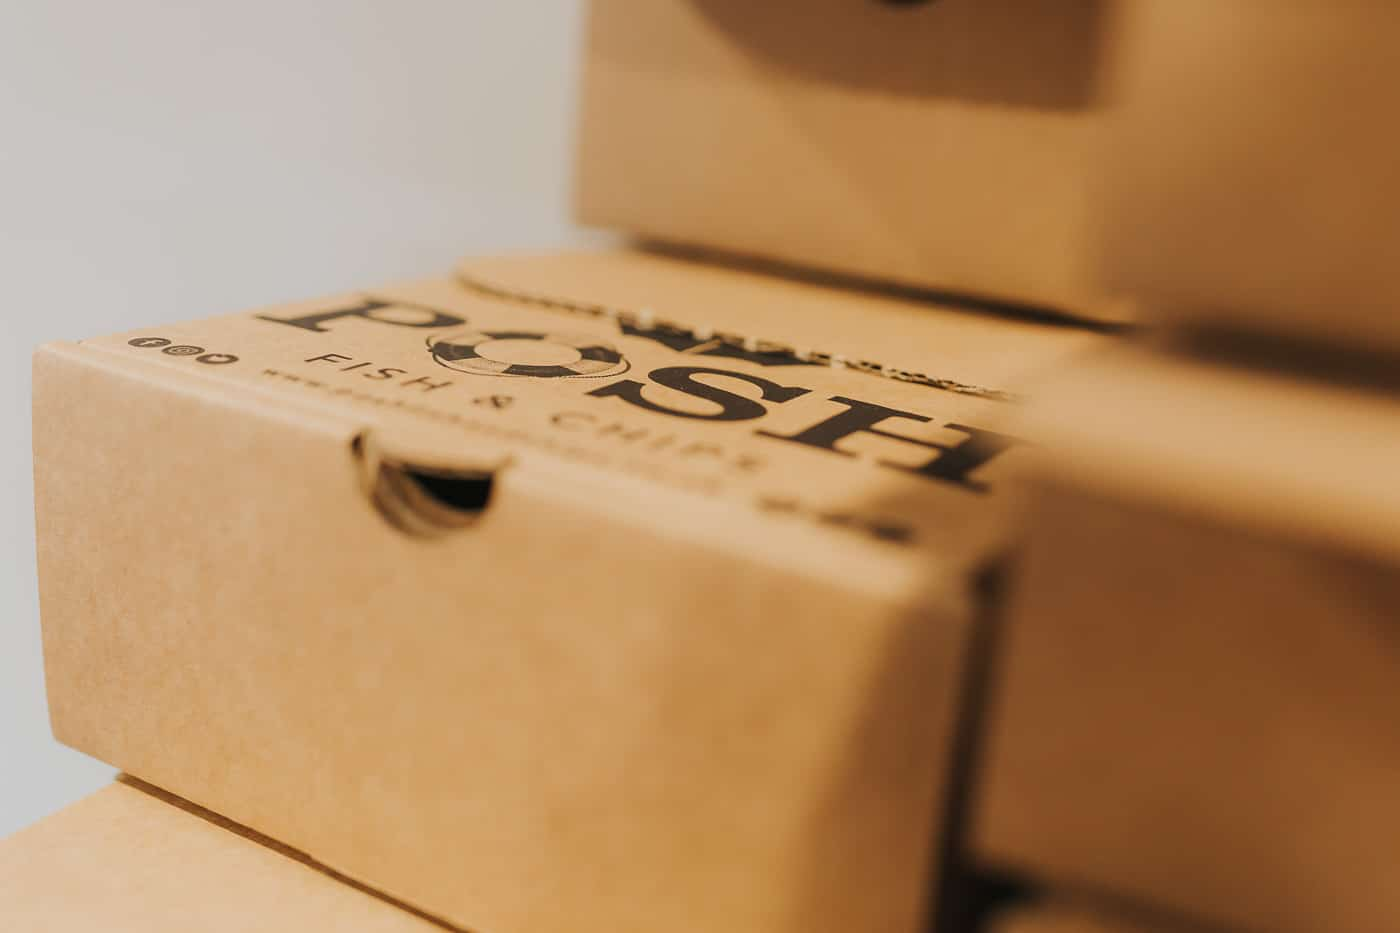 Close up of a takeaway box with the 'posh fish and chips' logo on